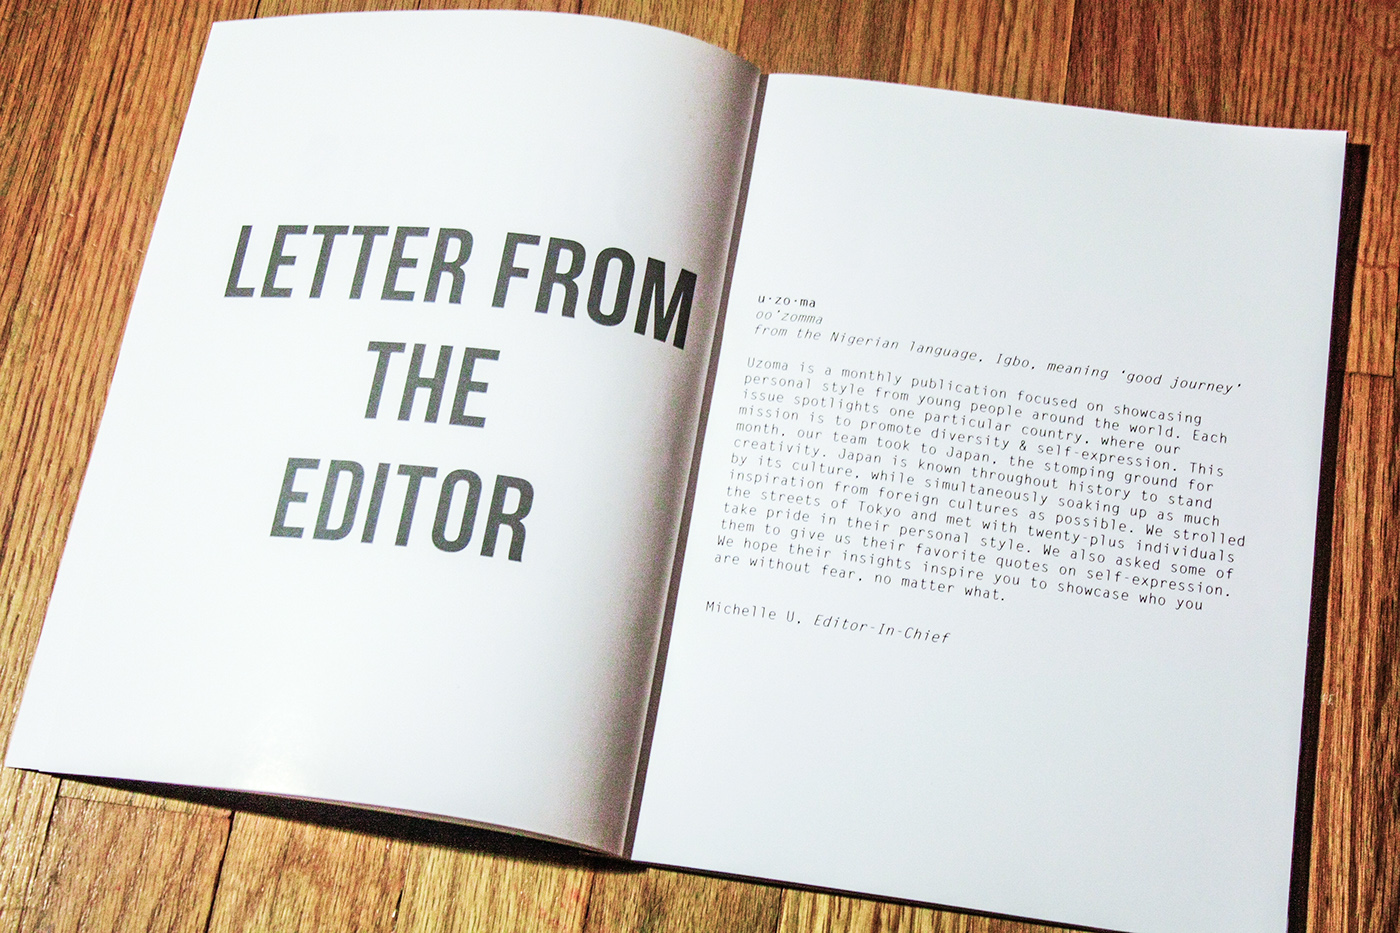 Uzoma is a publication that showcases the personal style of young creatives from around the world.